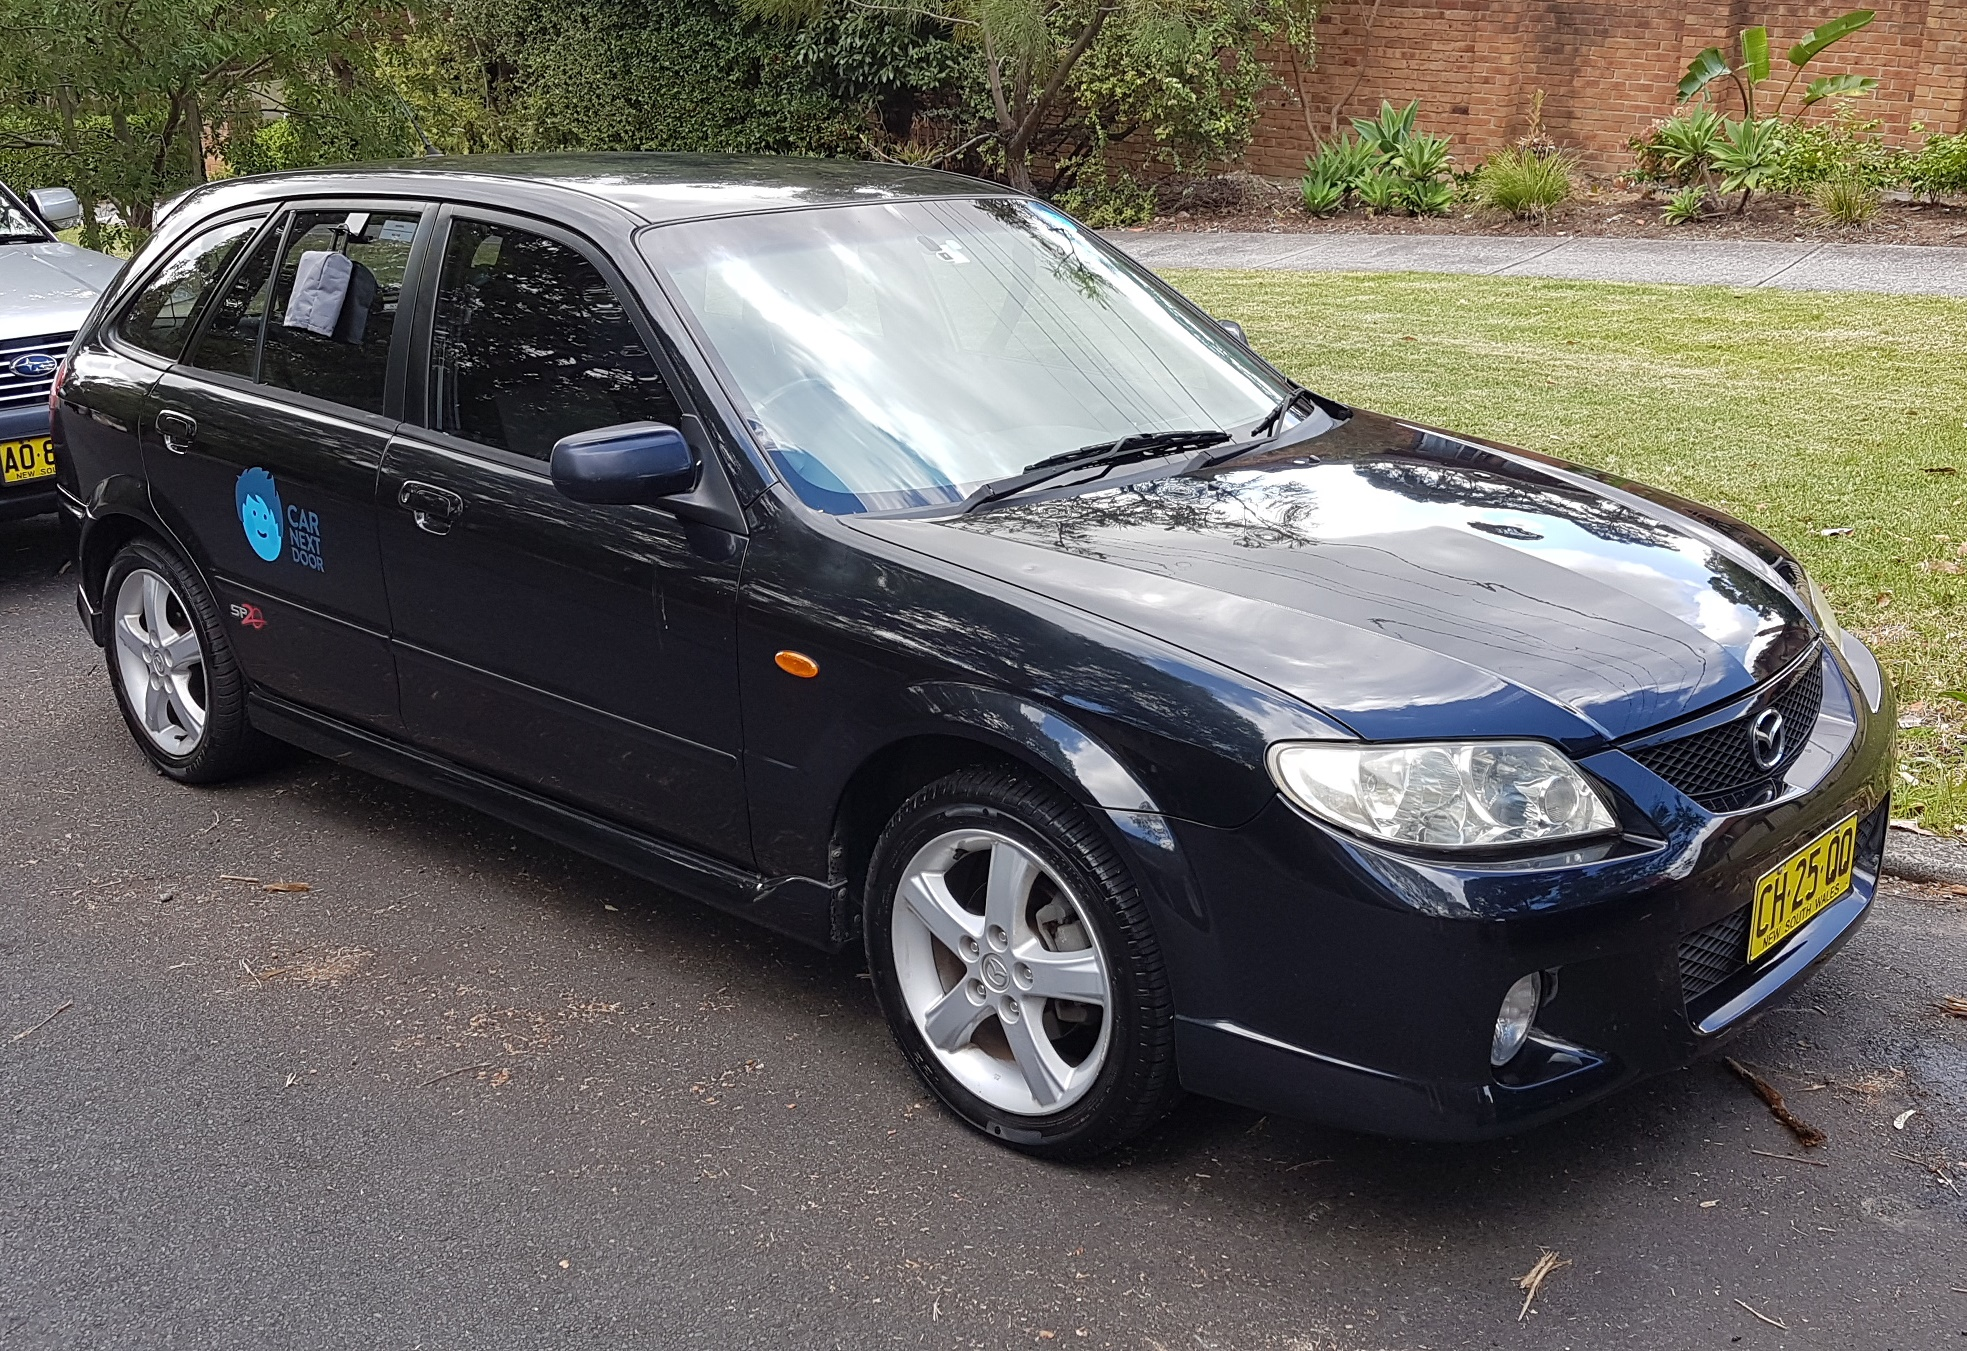 Picture of Beau's 2003 Mazda 323 (SP20)